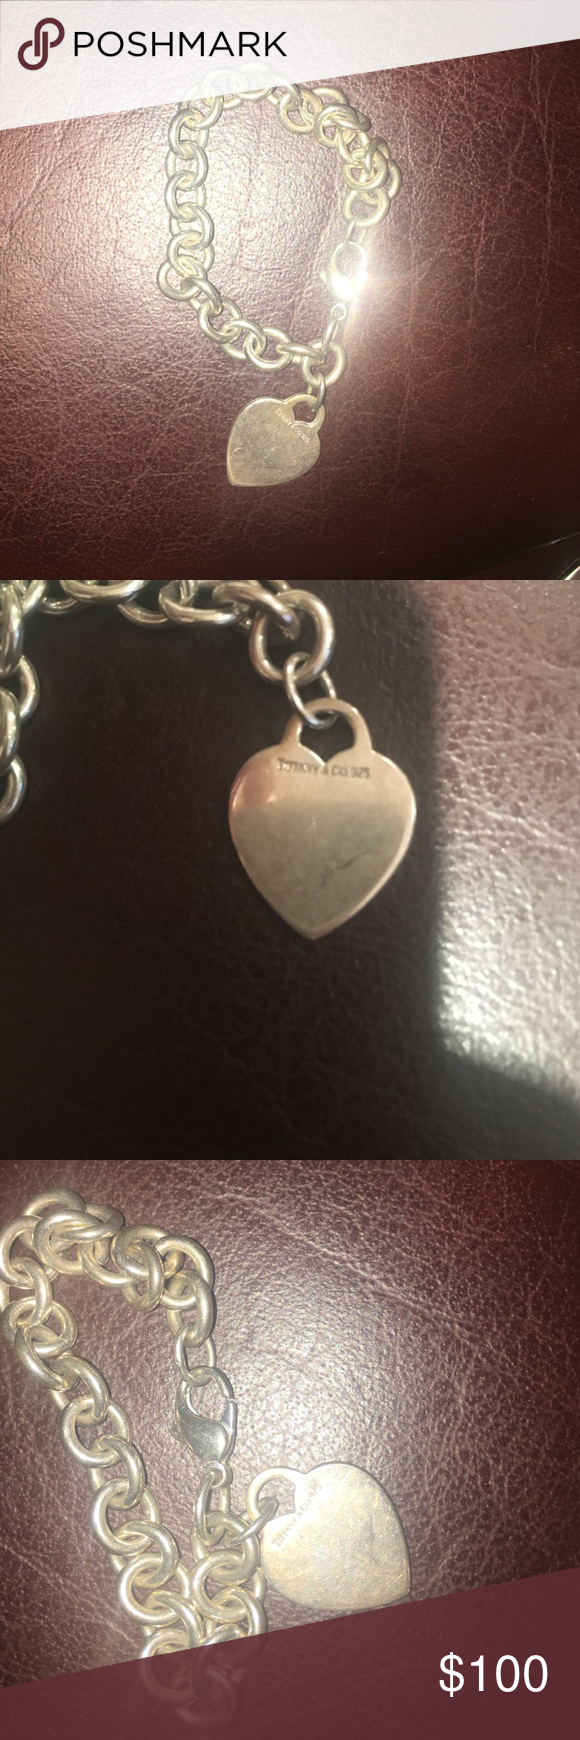 Tiffany silver bracelet Tiffany and co silver heart tag bracelet Tiffany & Co. Jewelry Bracelets